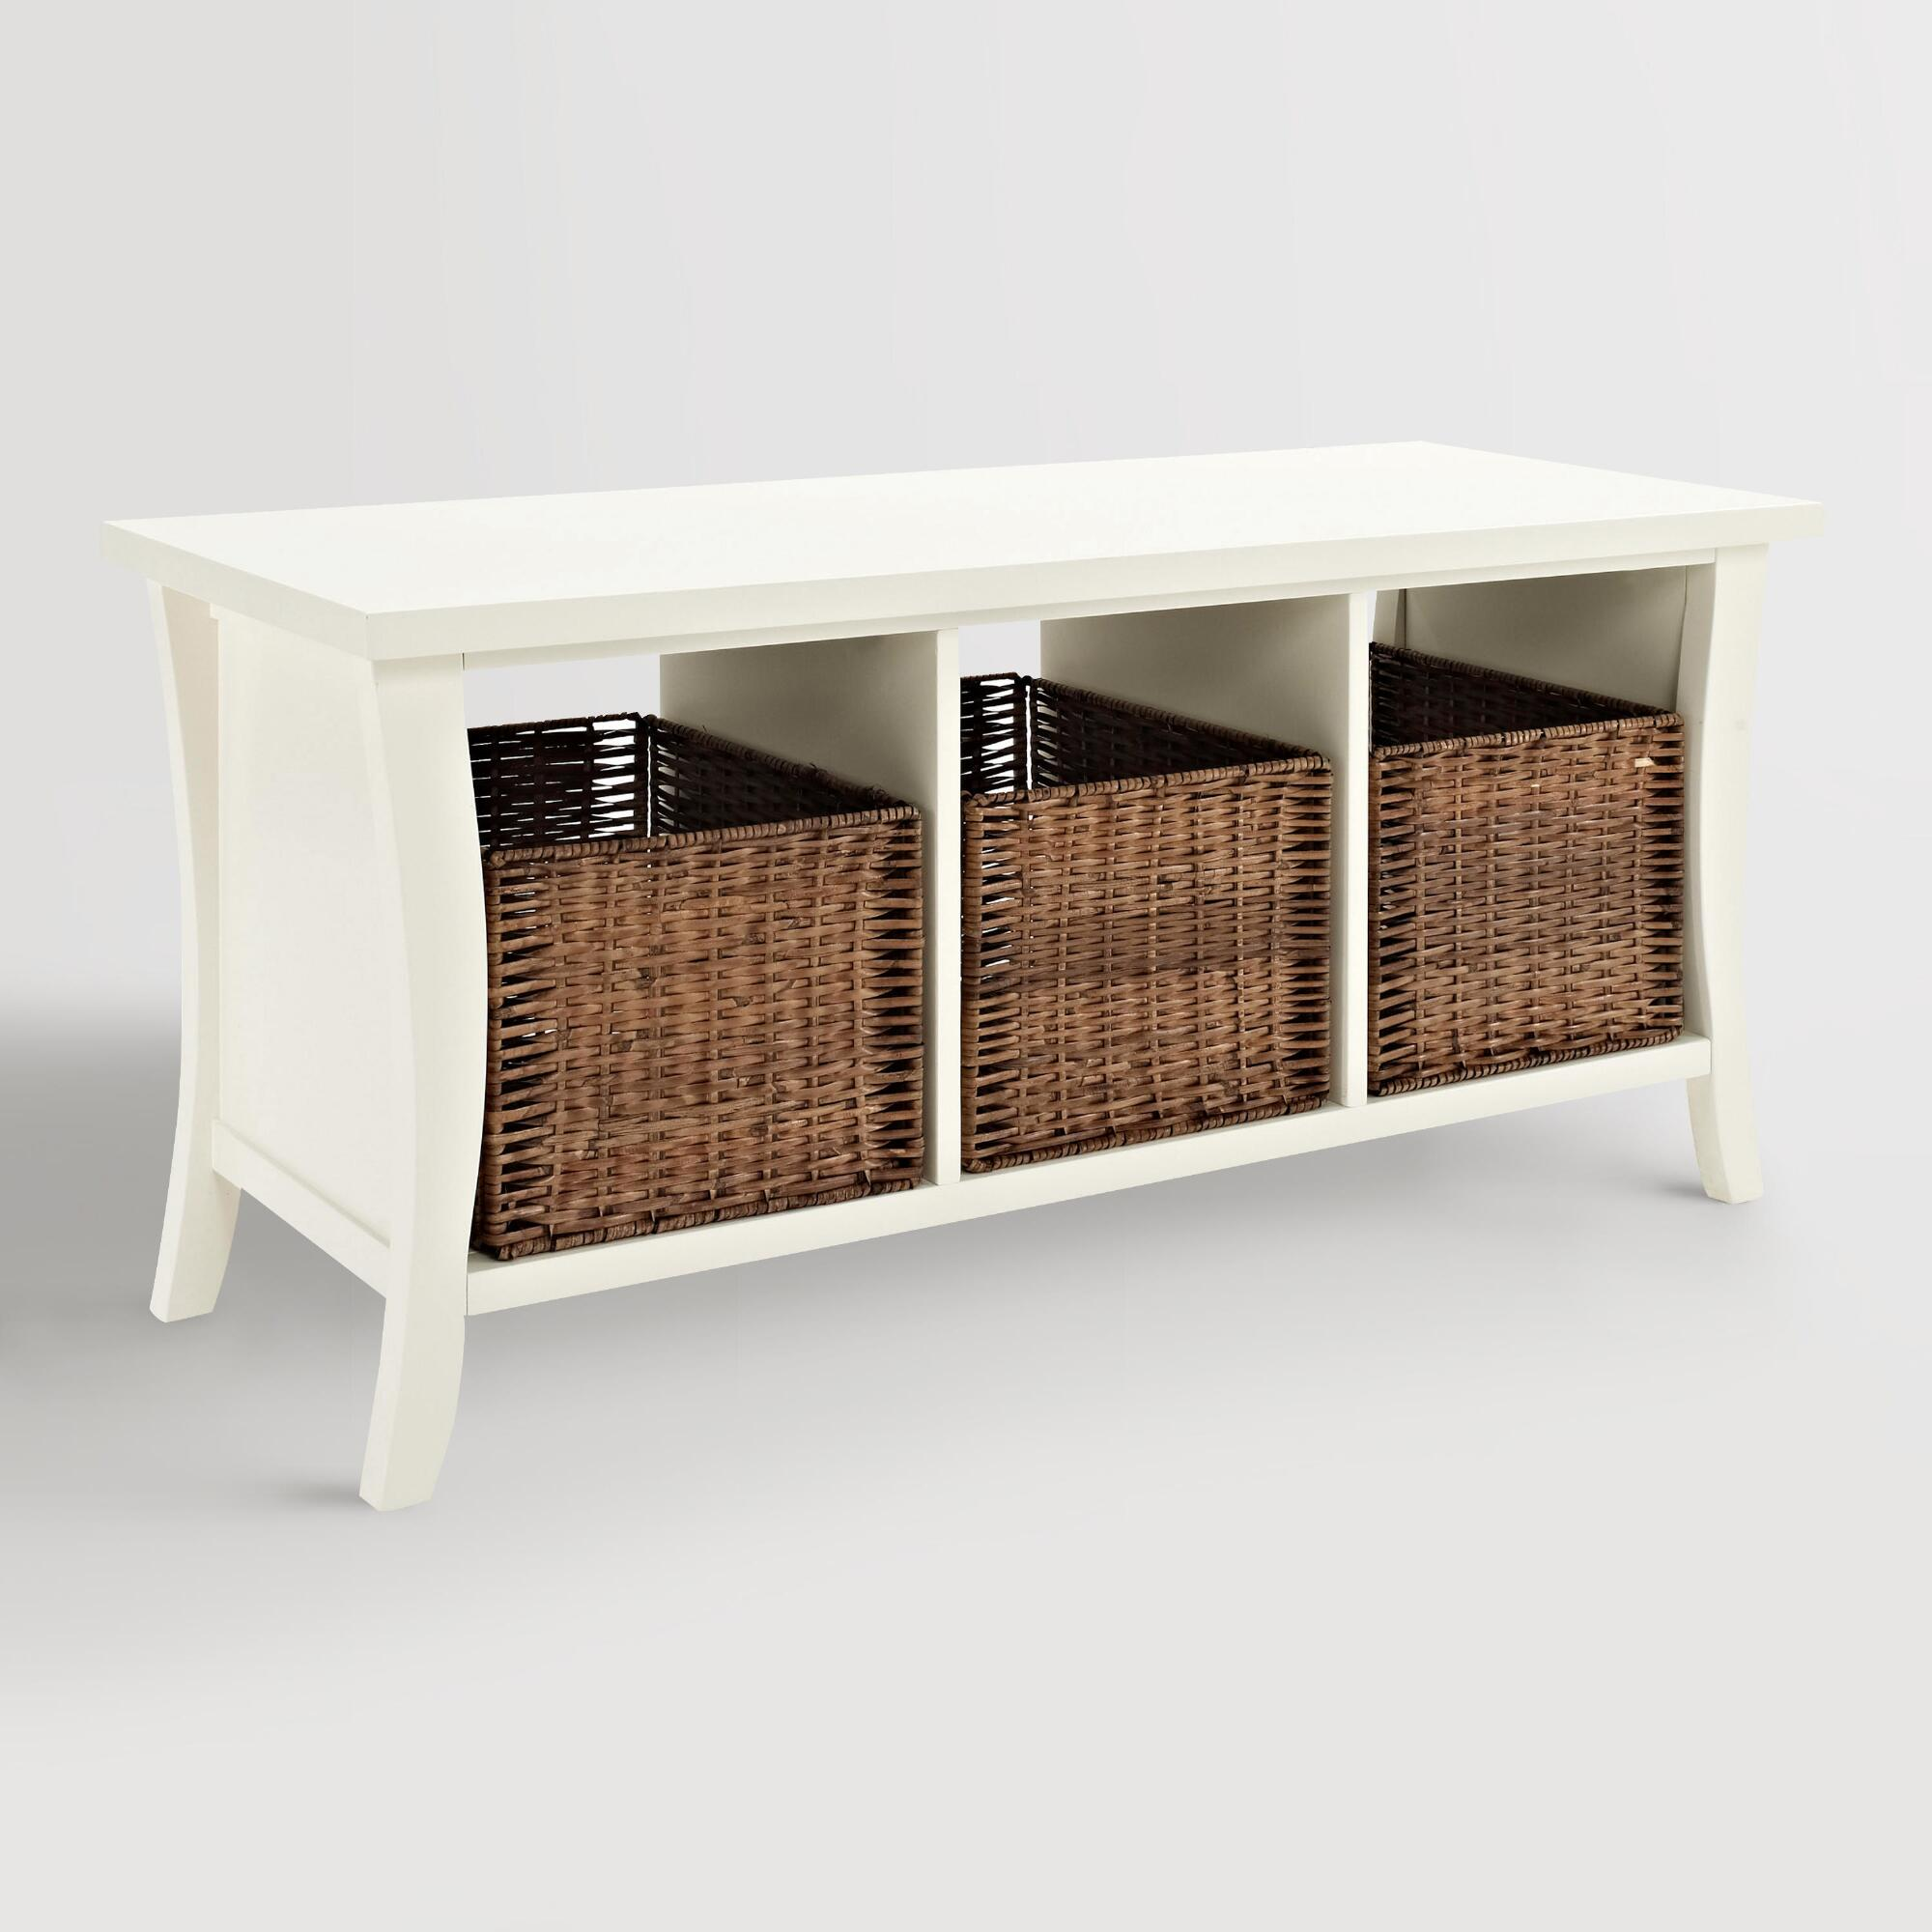 Foyer Bench With Baskets : White wood cassia entryway storage bench with baskets